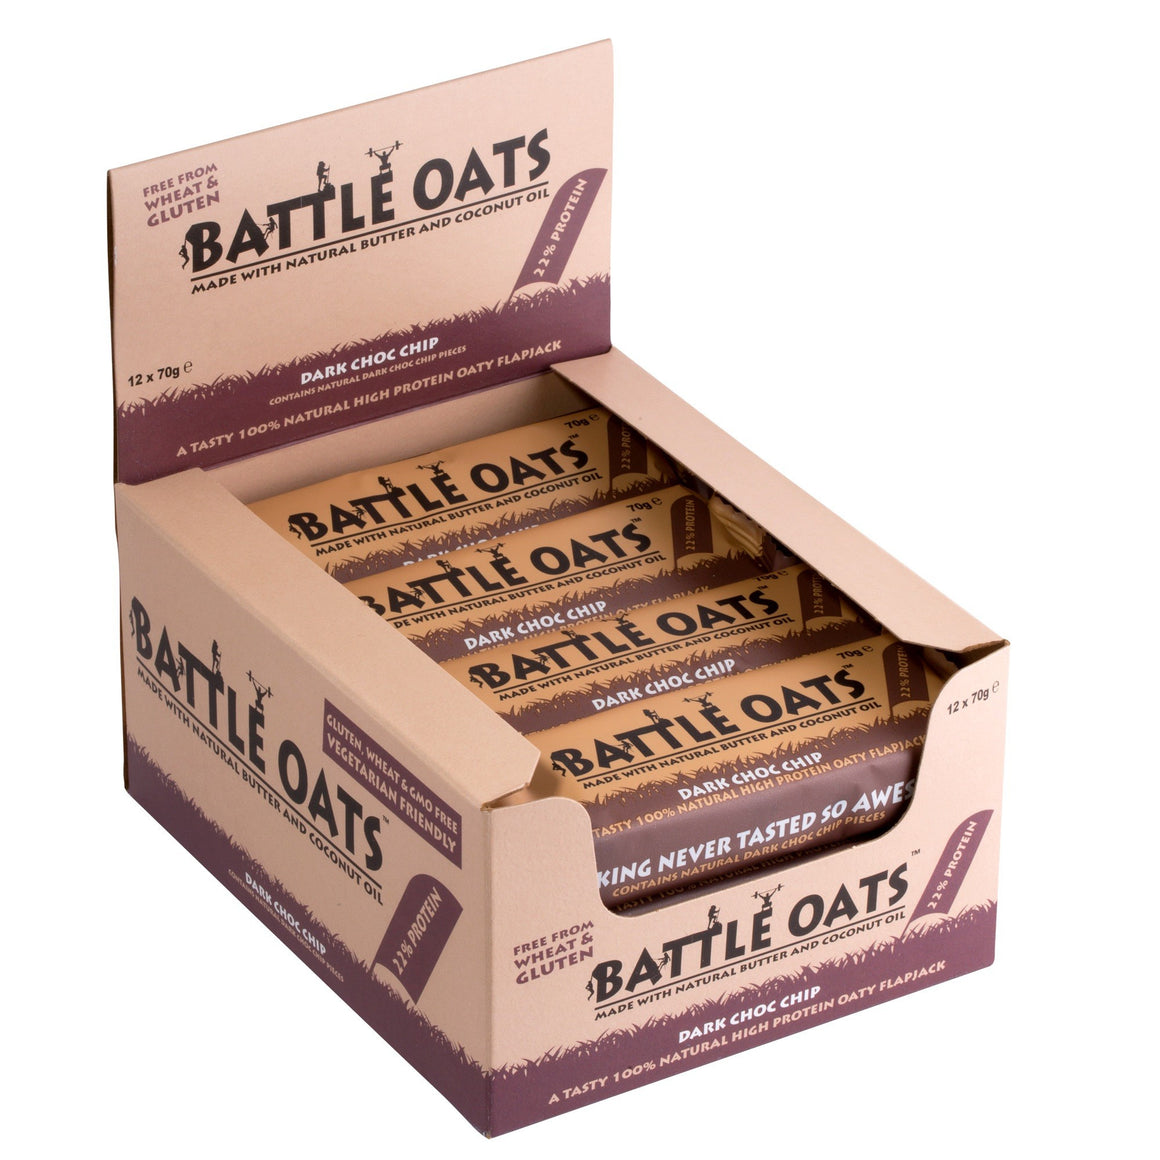 Battle Oats Natural Protein Flapjack